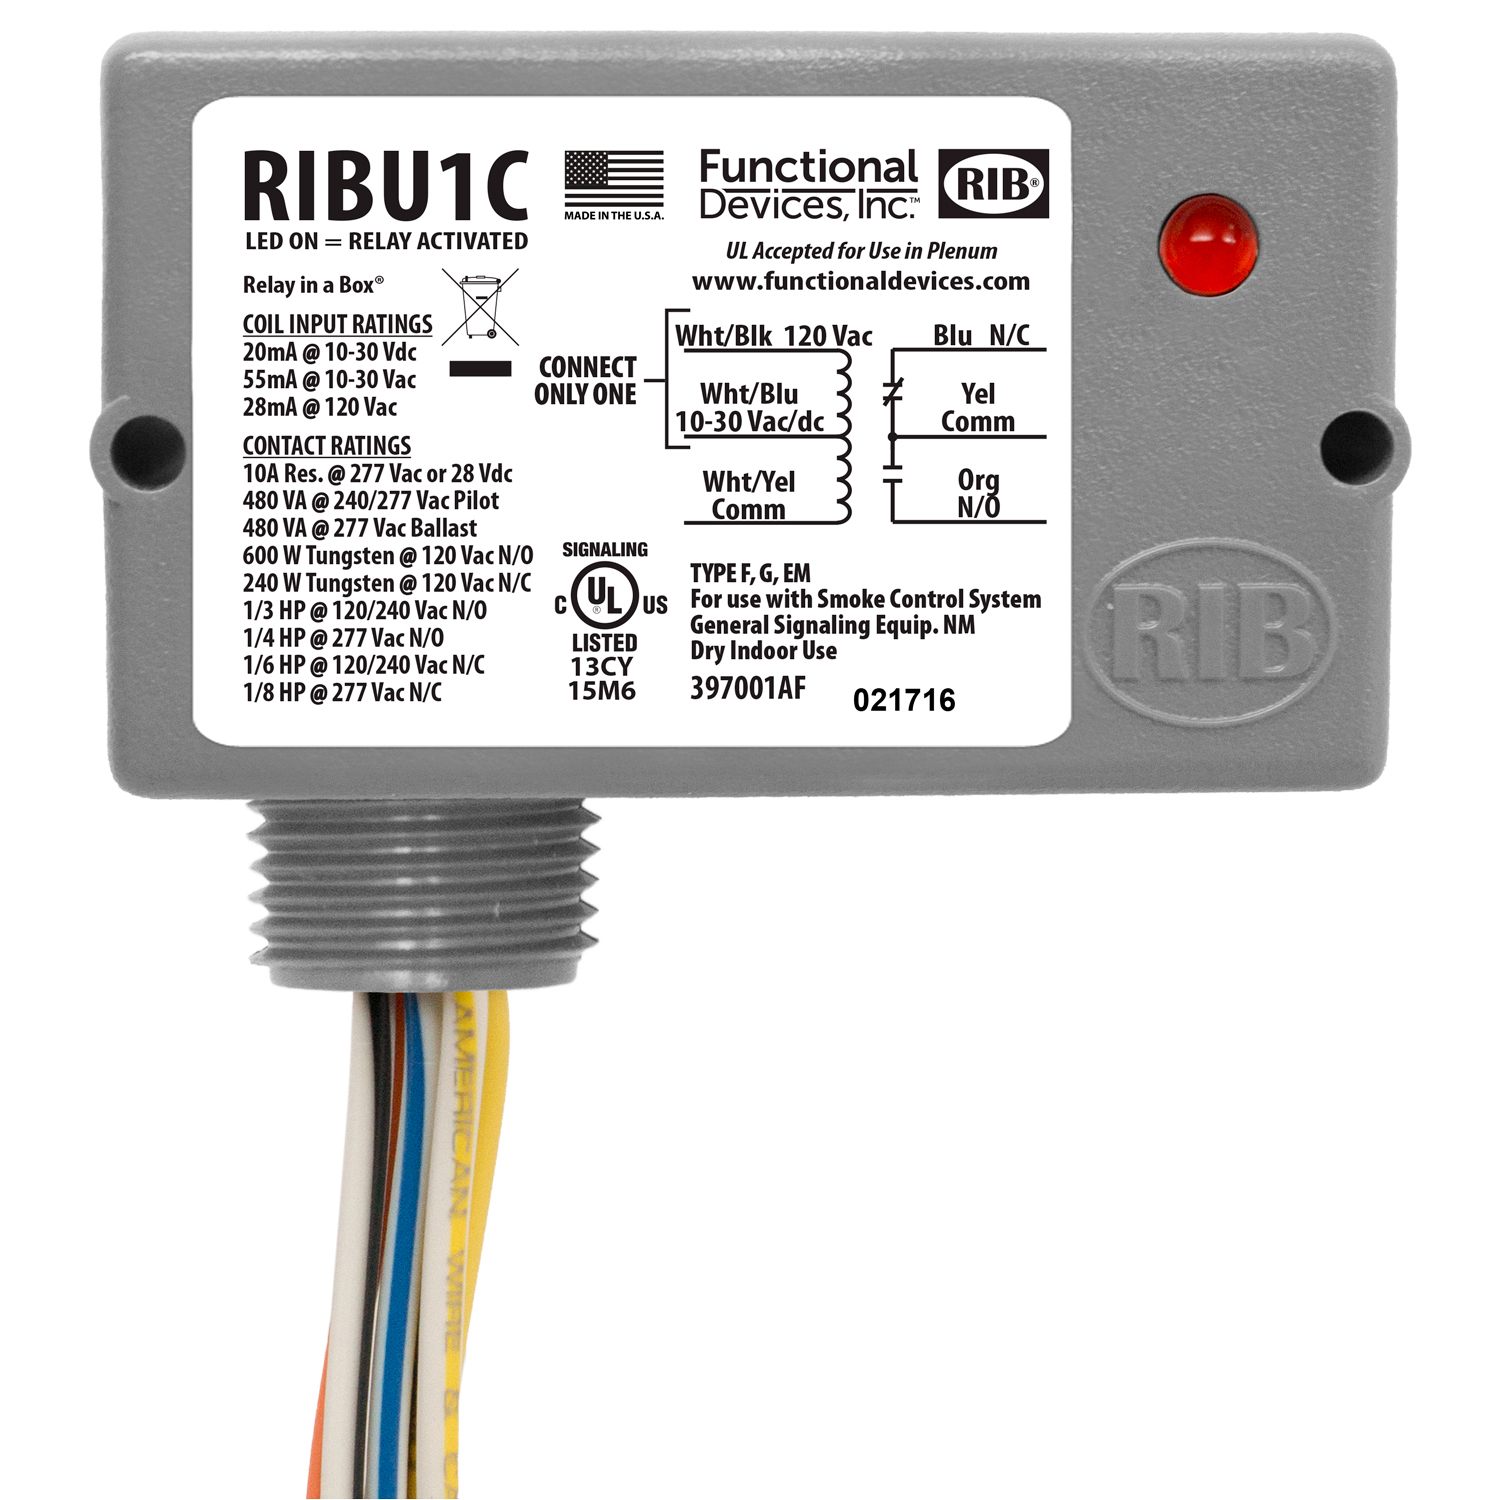 RIBU1C - Functional Devices Enclosed Relay 10 Amp SPDT with 10-30 Vac/dc/ 120 Vac Coil.